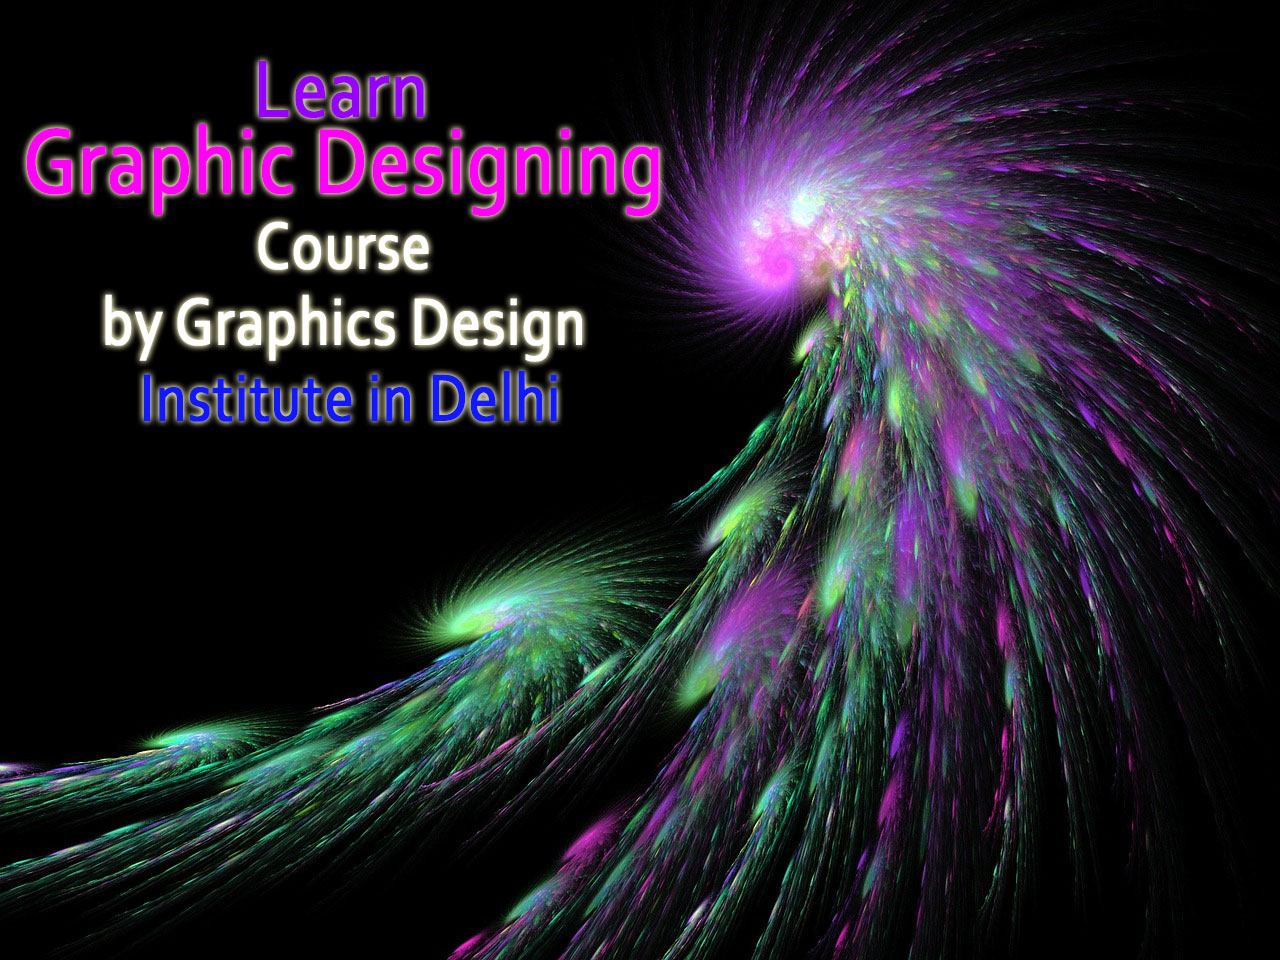 learn web design ways to learn graphic designing course by graphics design 657